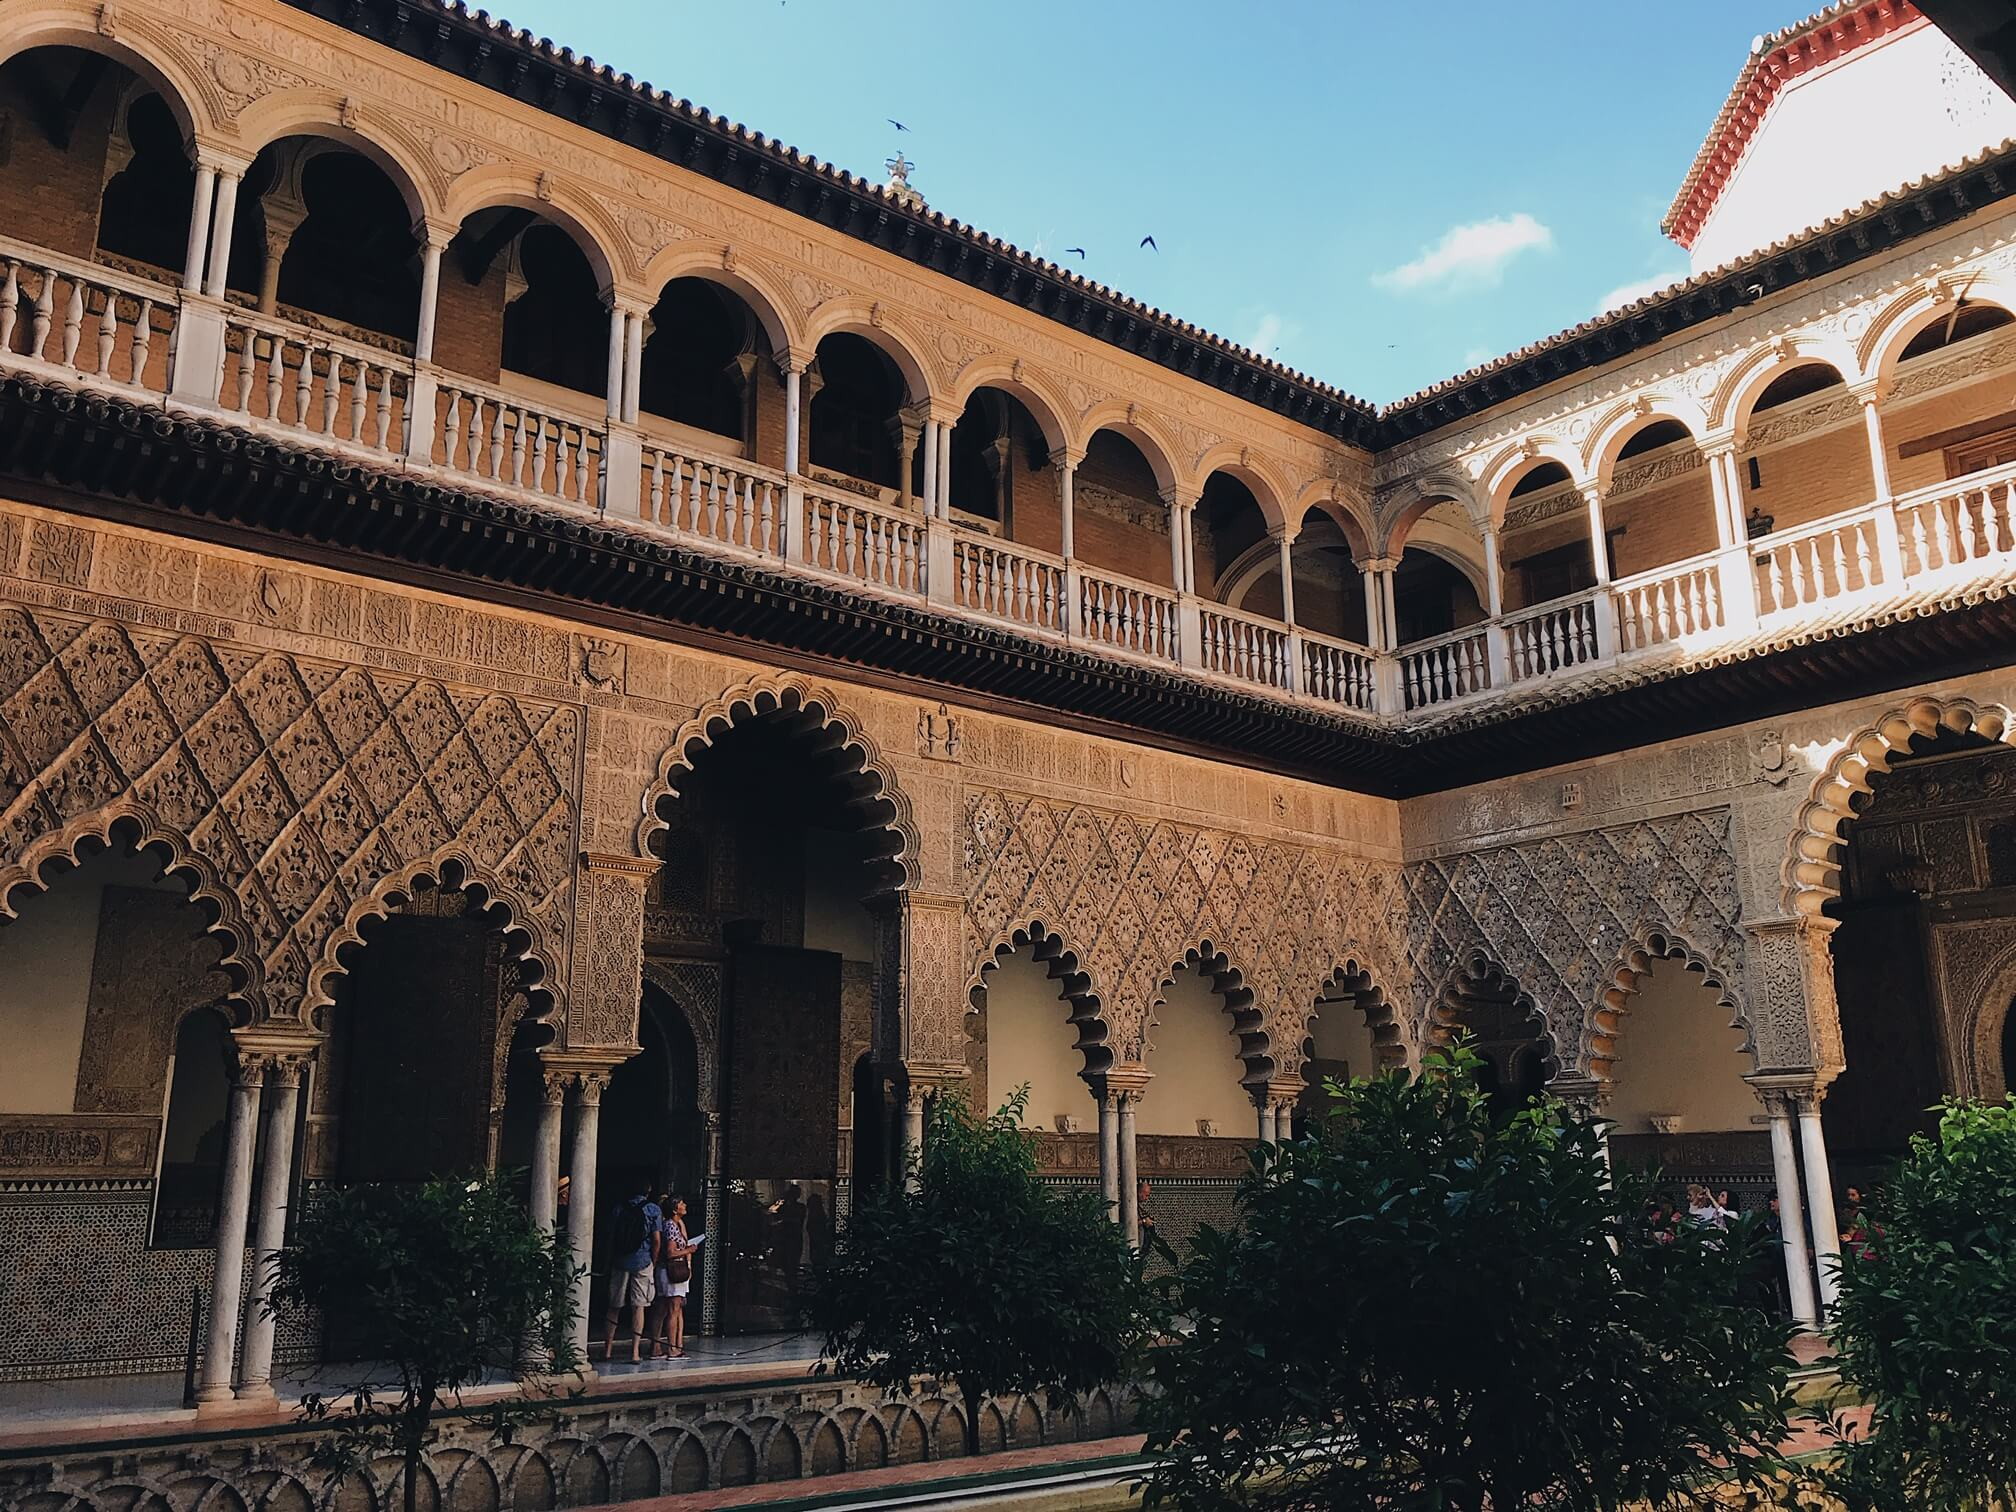 Real Alcazar Things to do in seville